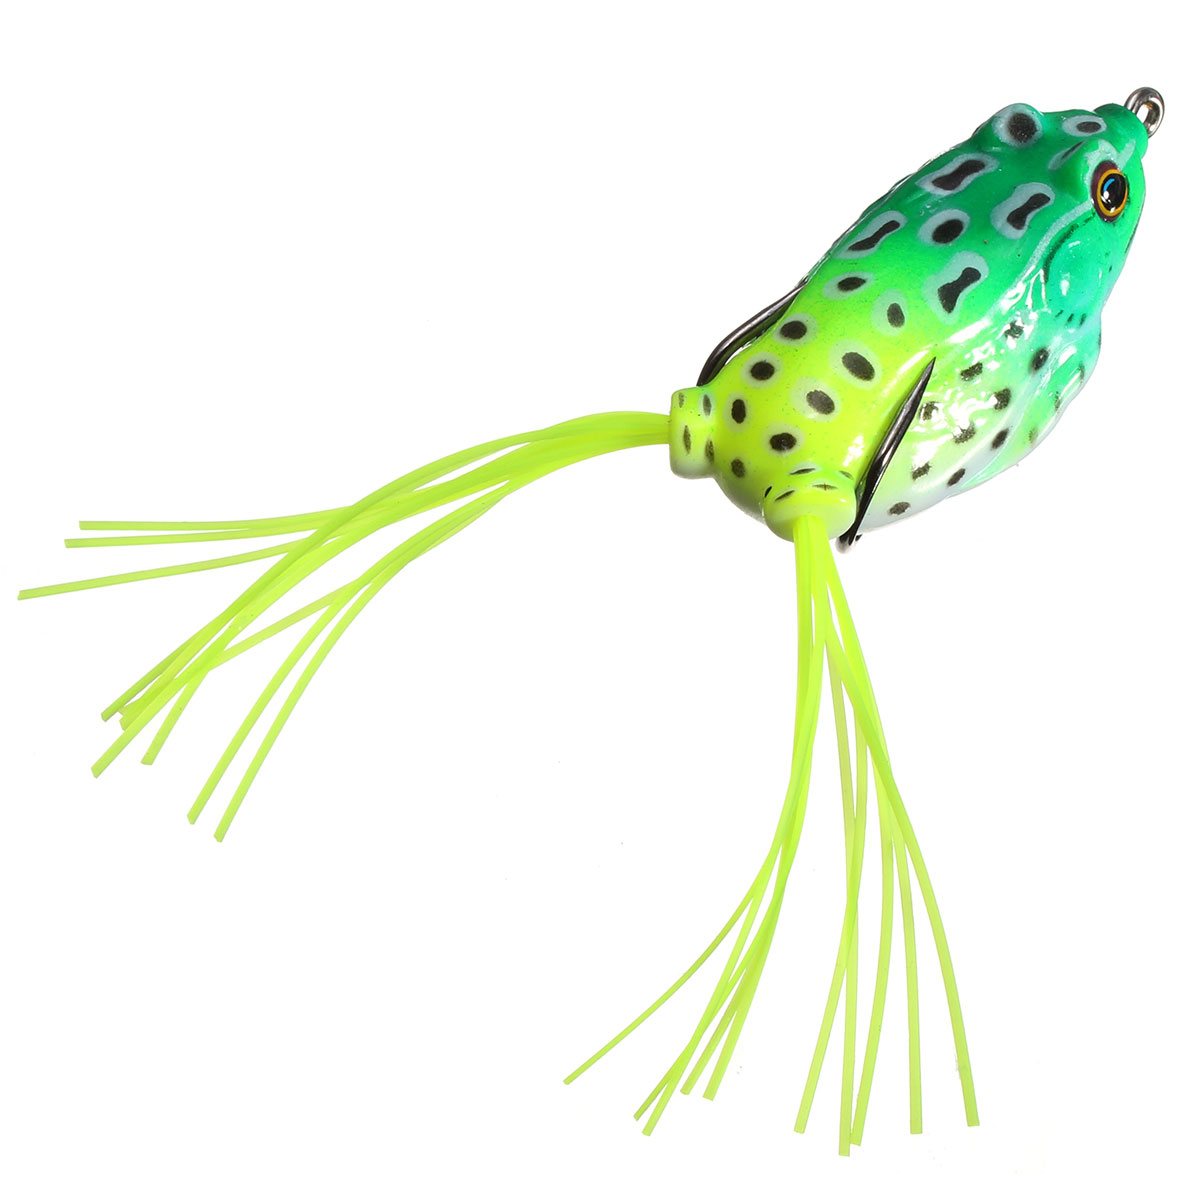 Fishing Lure Soft Frog Baits Frog Hollow Body Soft Bait